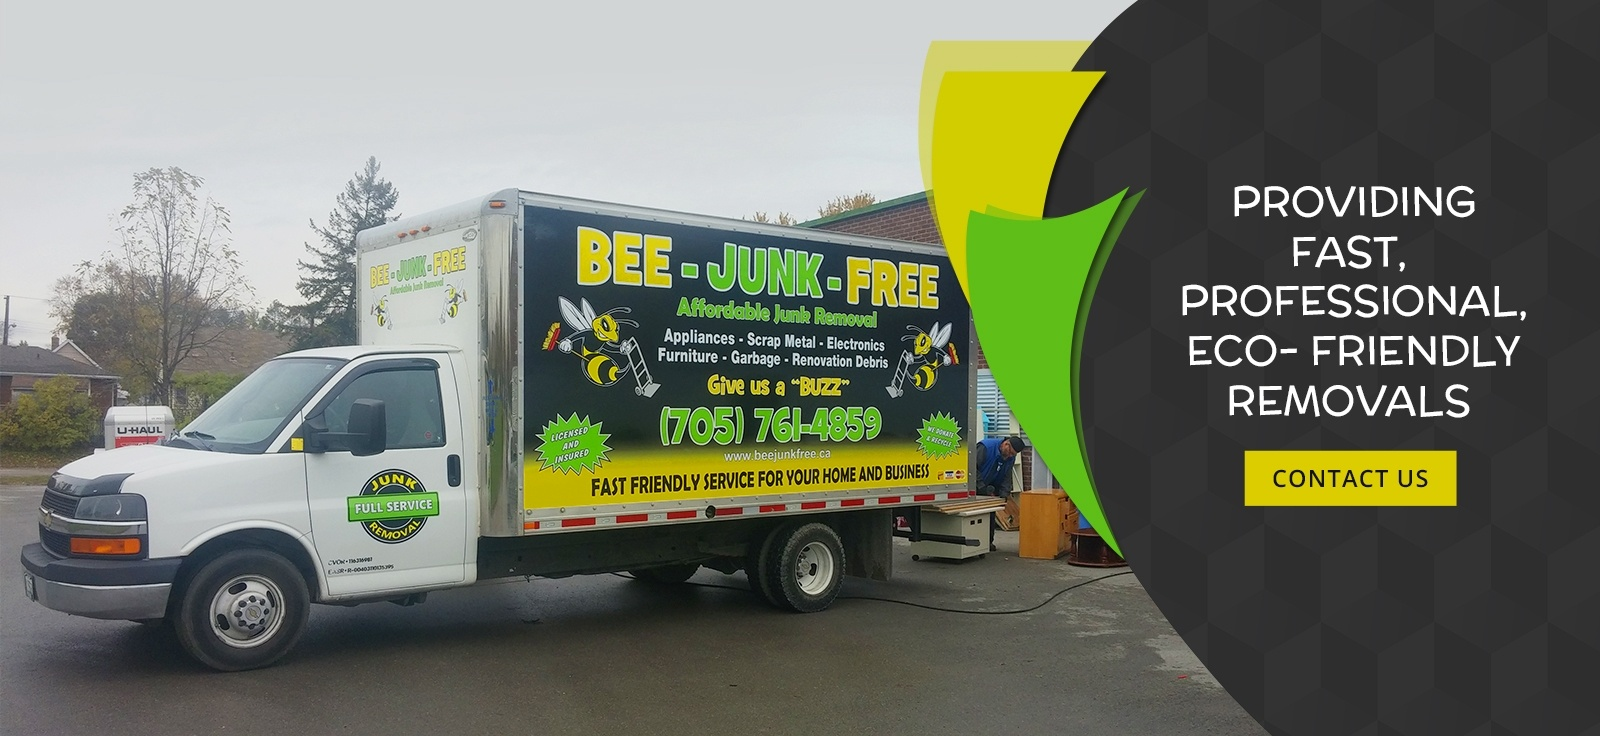 Free Junk Removal >> Bee Junk Free Junk Removal Peterborough Furniture Removal